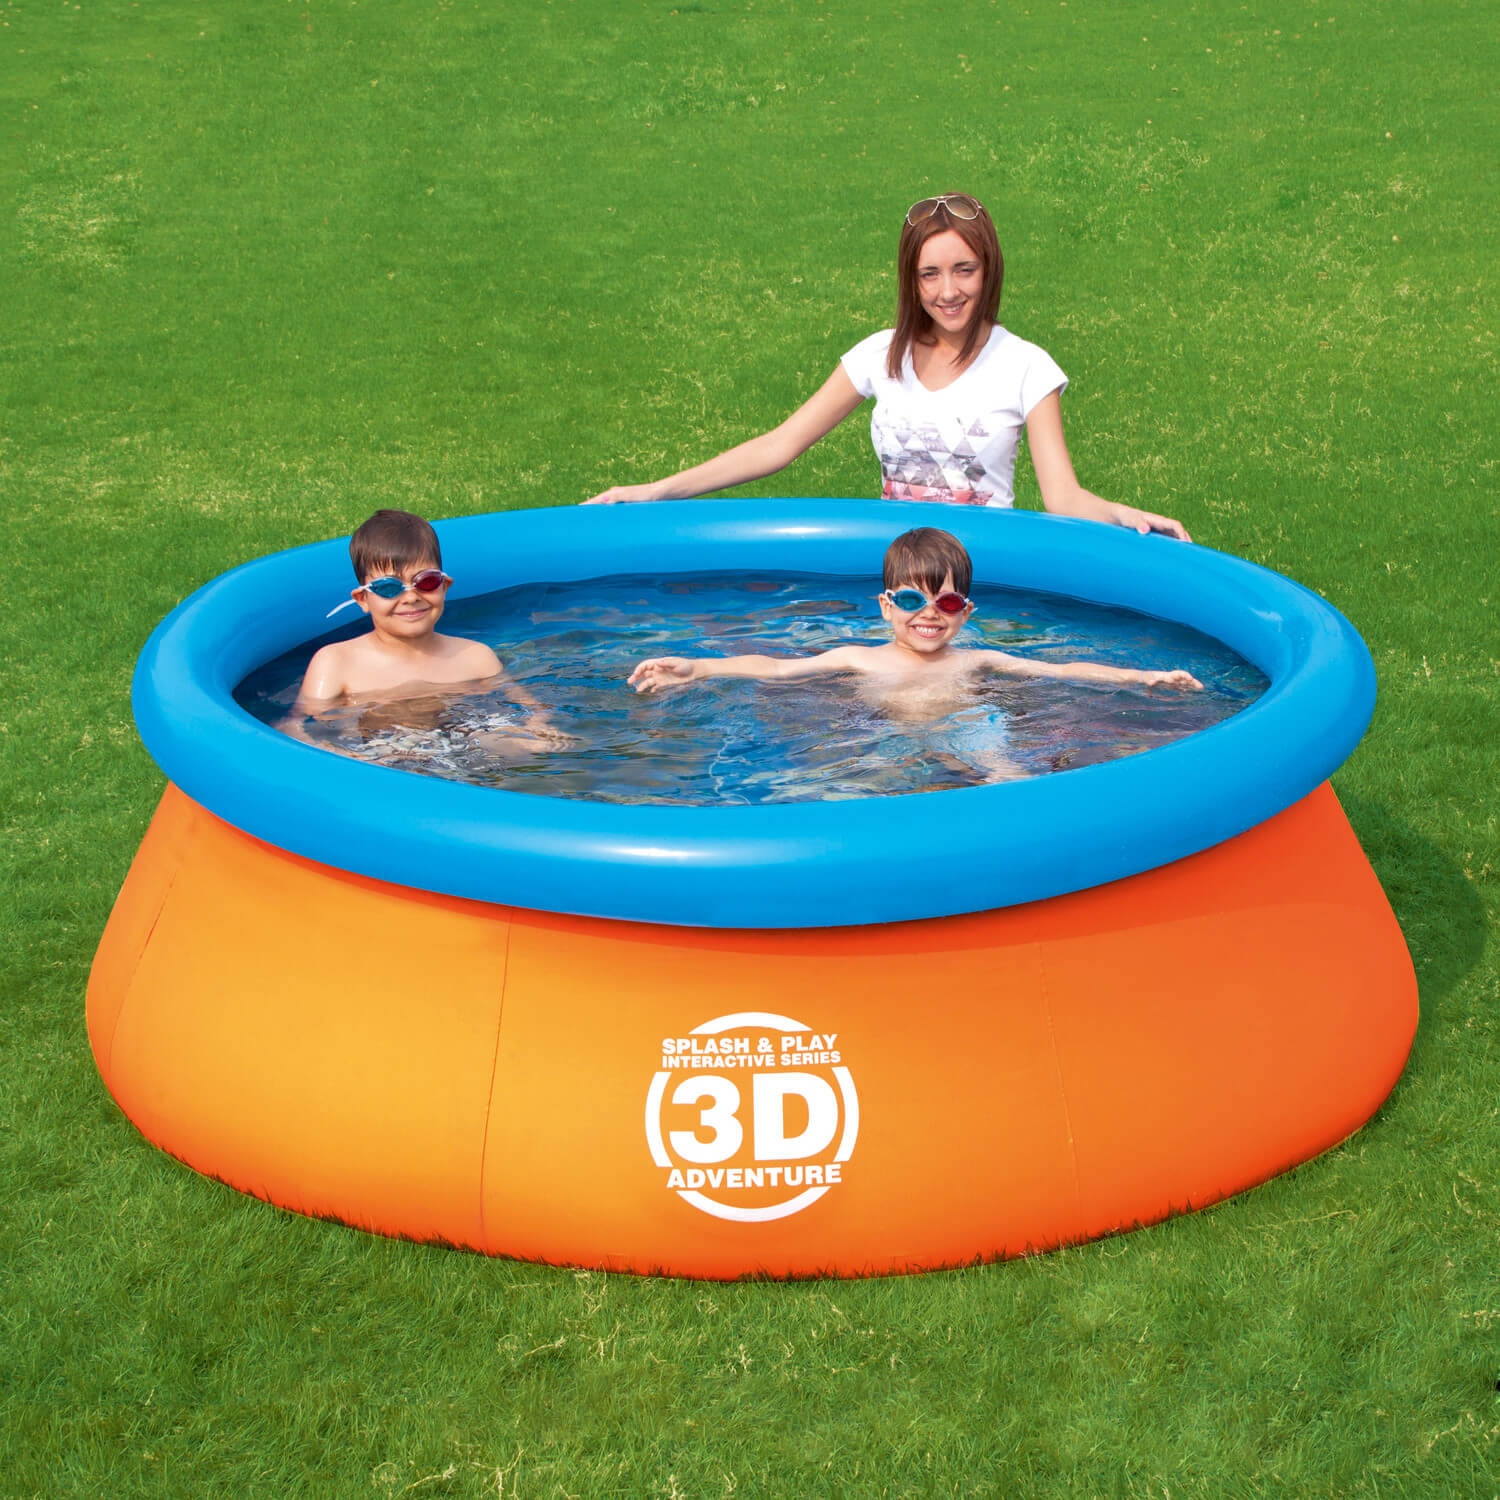 This is a different design of inflatable pool. It has an inflatable ring around a large basin of water. This kind of inflatable pool is good because it holds a good volume, and creates an opportunity for real swimming.